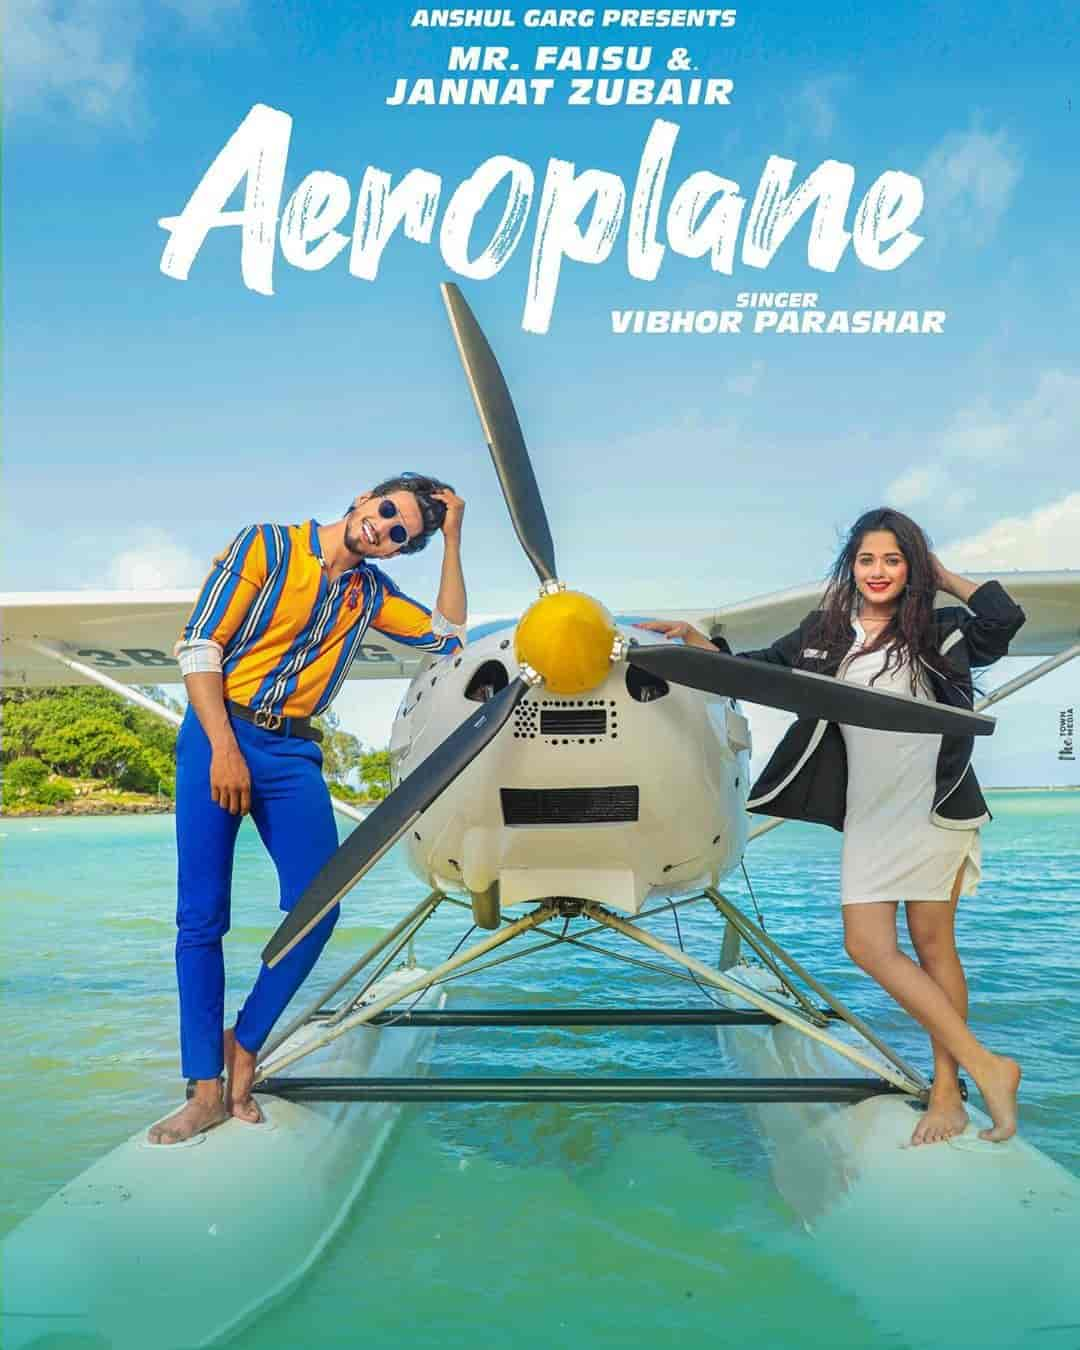 Aeroplane Punjabi Song Image Features Jannat Zubair and Mr Faisu